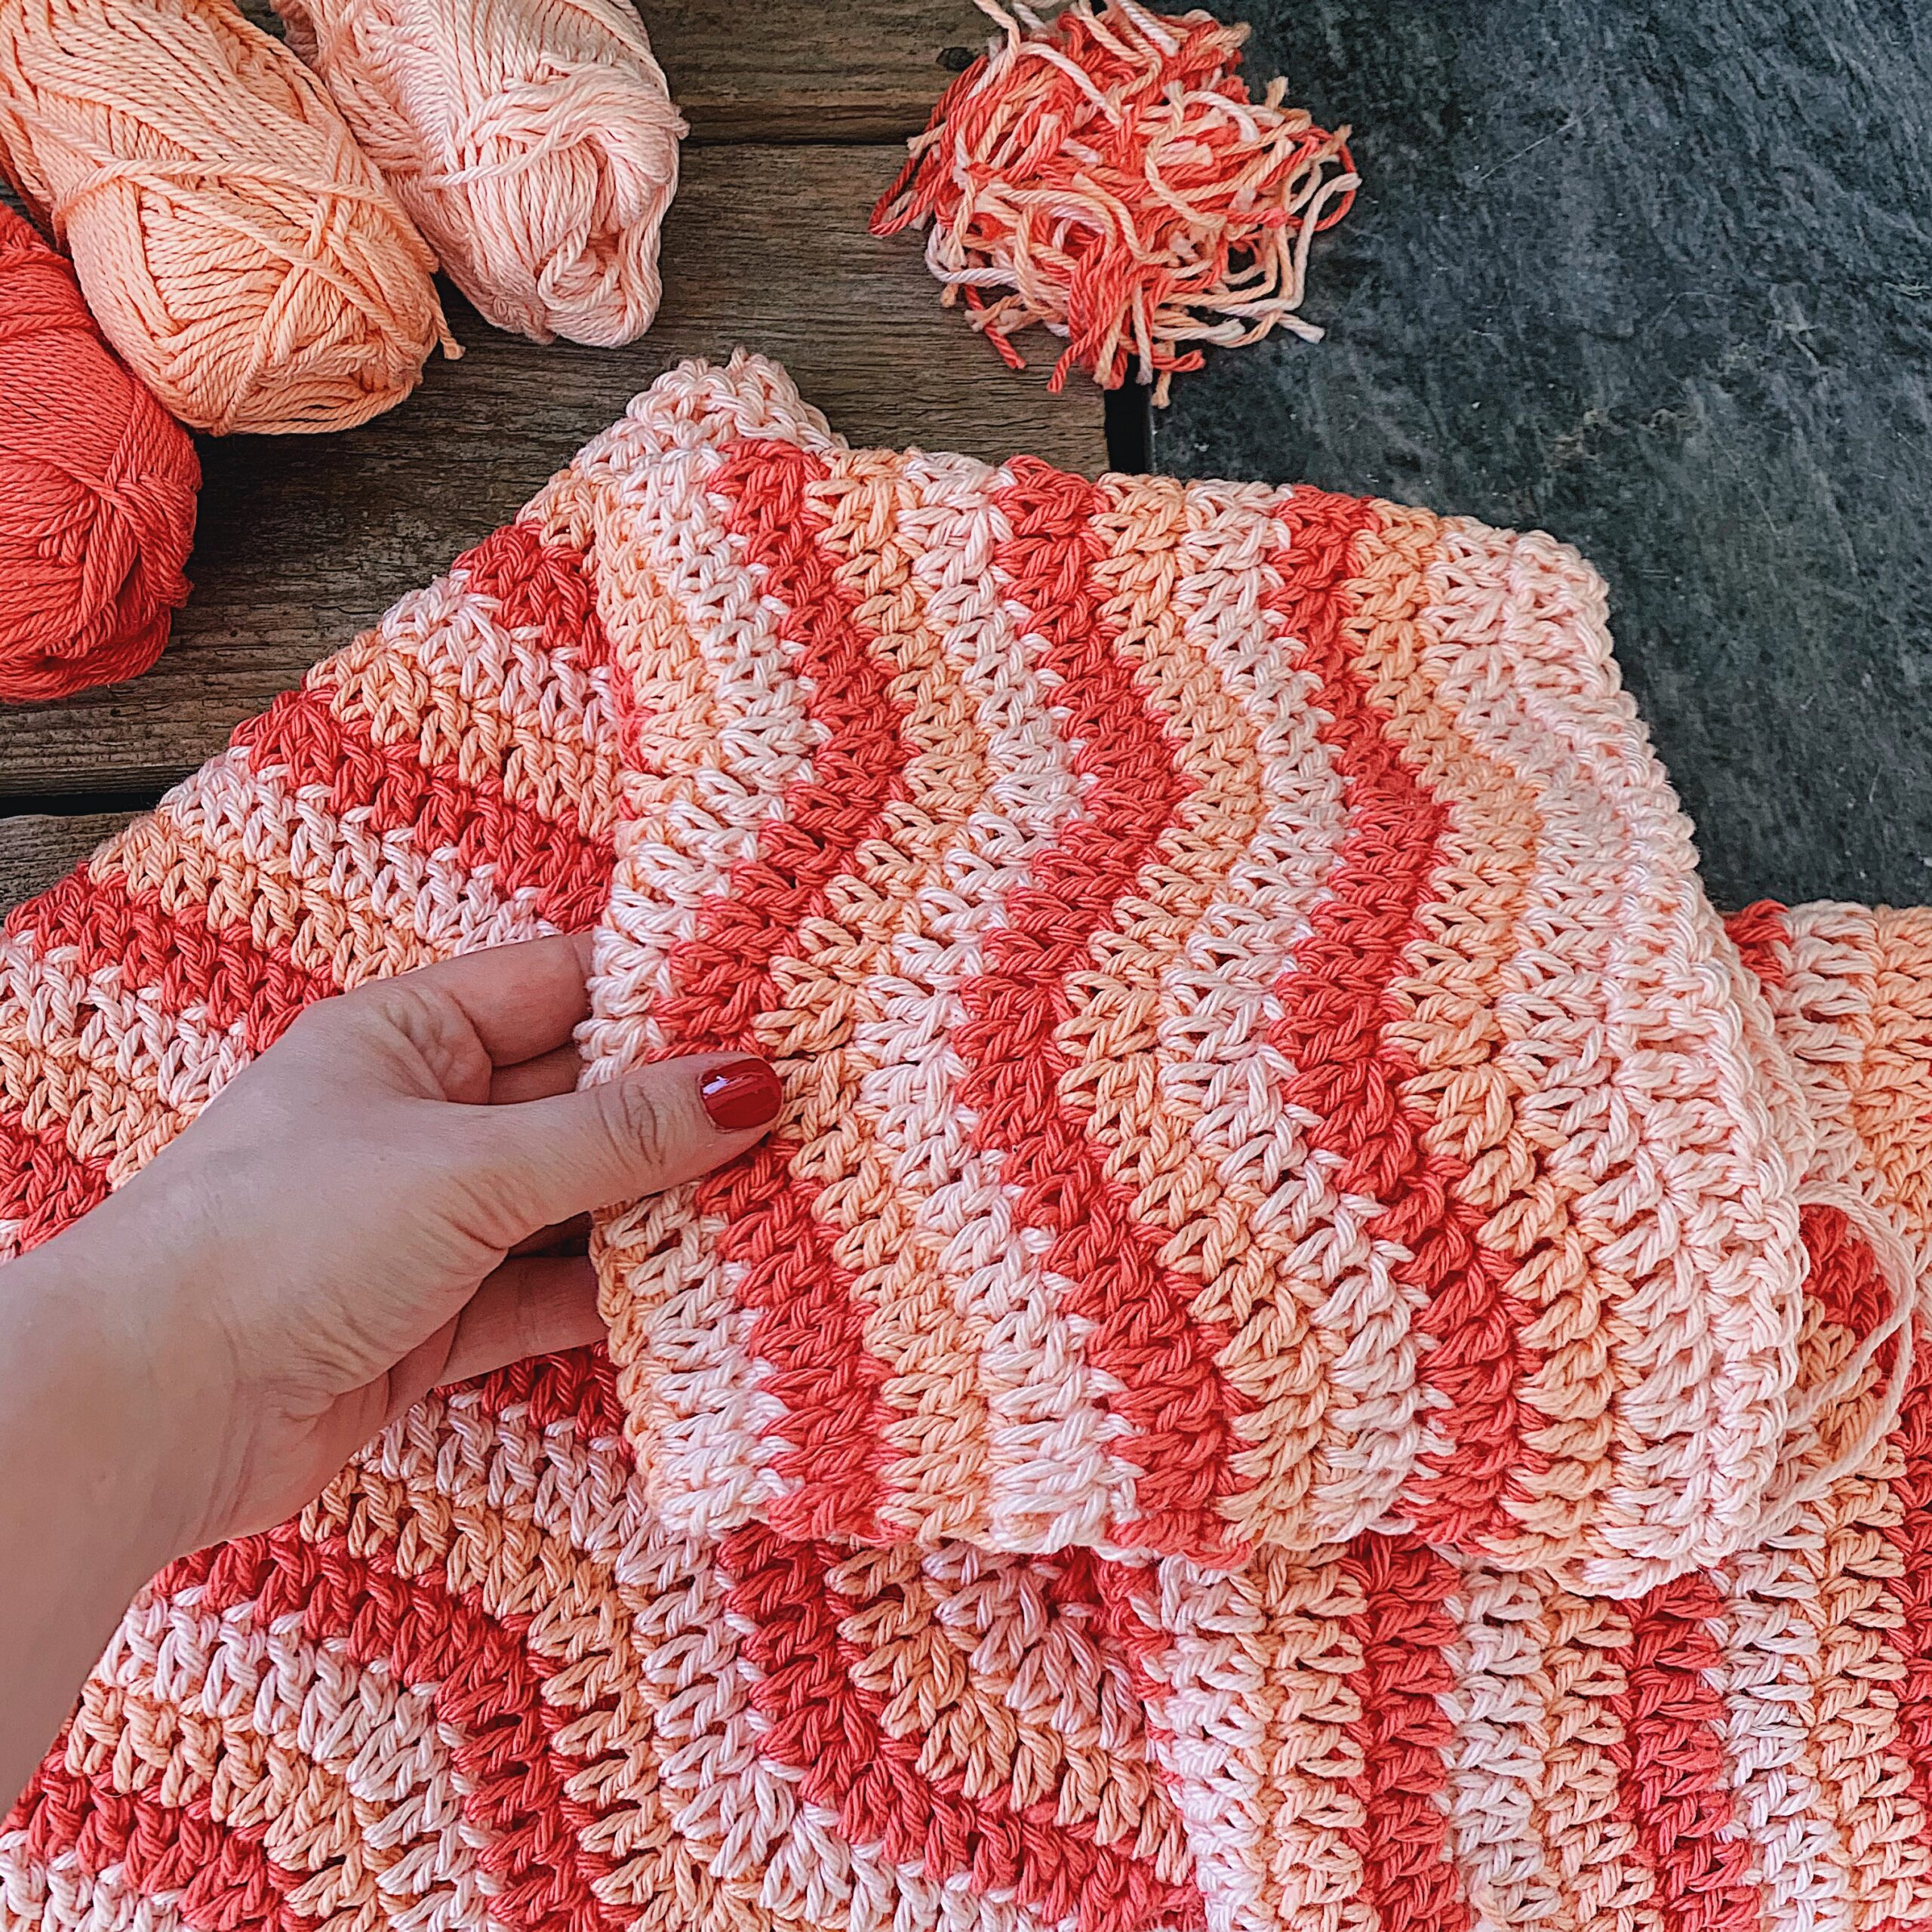 A closeup of the Malibu Sweater as a work in progress, pink and peachy shades in a wave pattern